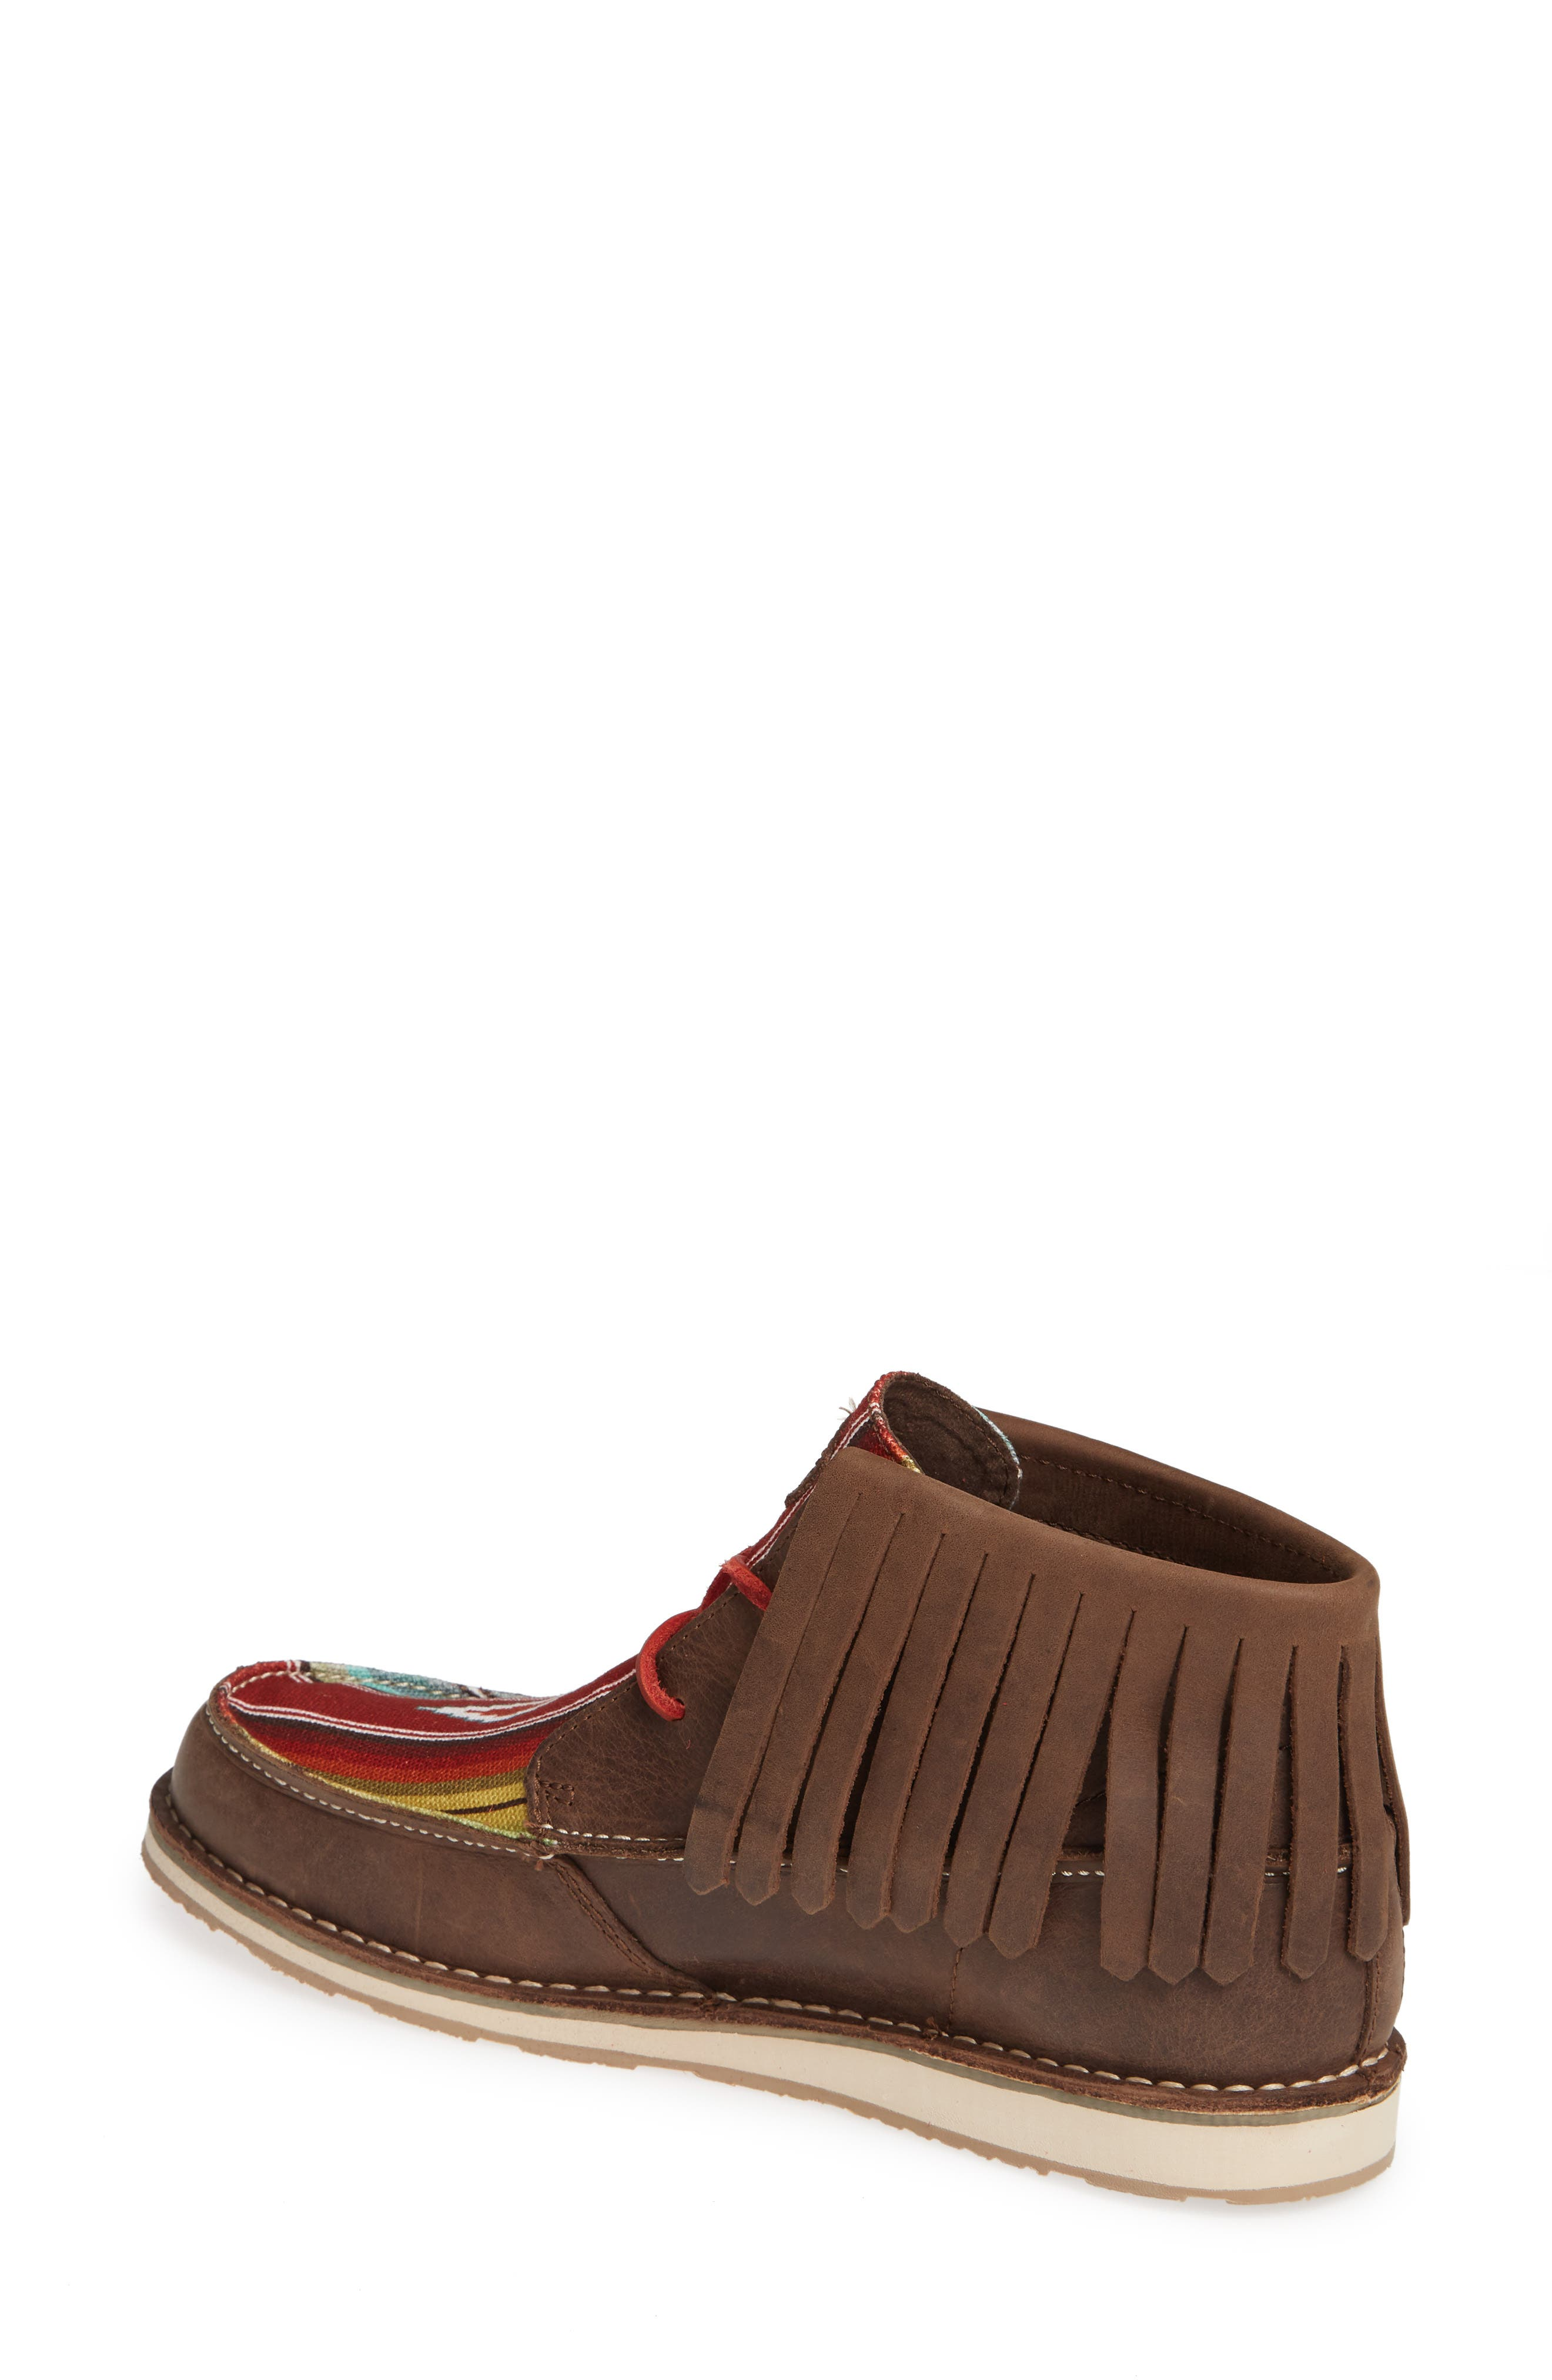 Cruiser Fringe Chukka Boot,                             Alternate thumbnail 2, color,                             PALM BROWN SADDLE LEATHER